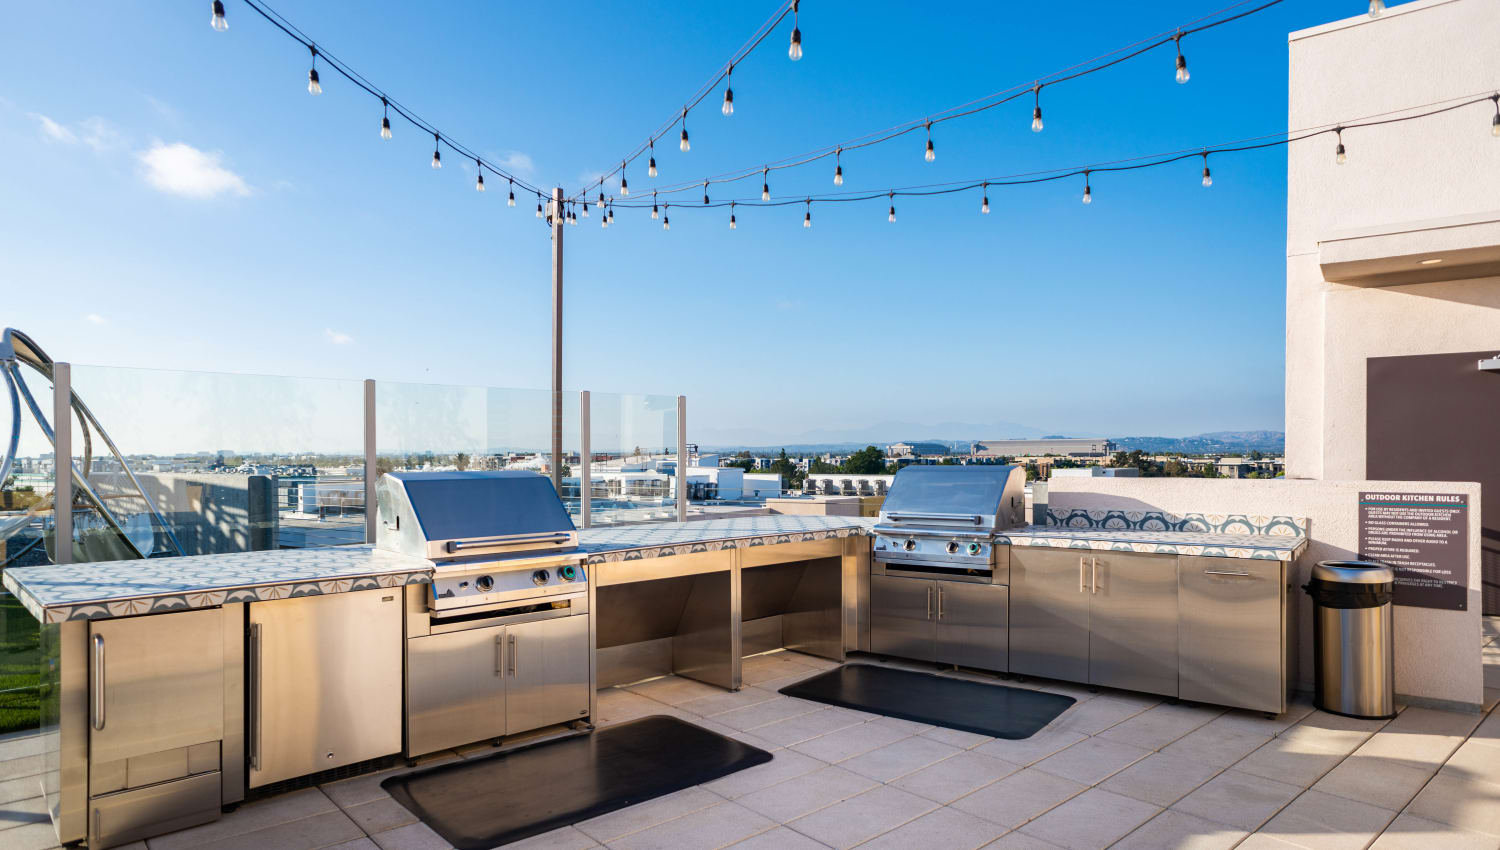 Rooftop barbecue area with gas grills at Fusion Apartments in Irvine, California